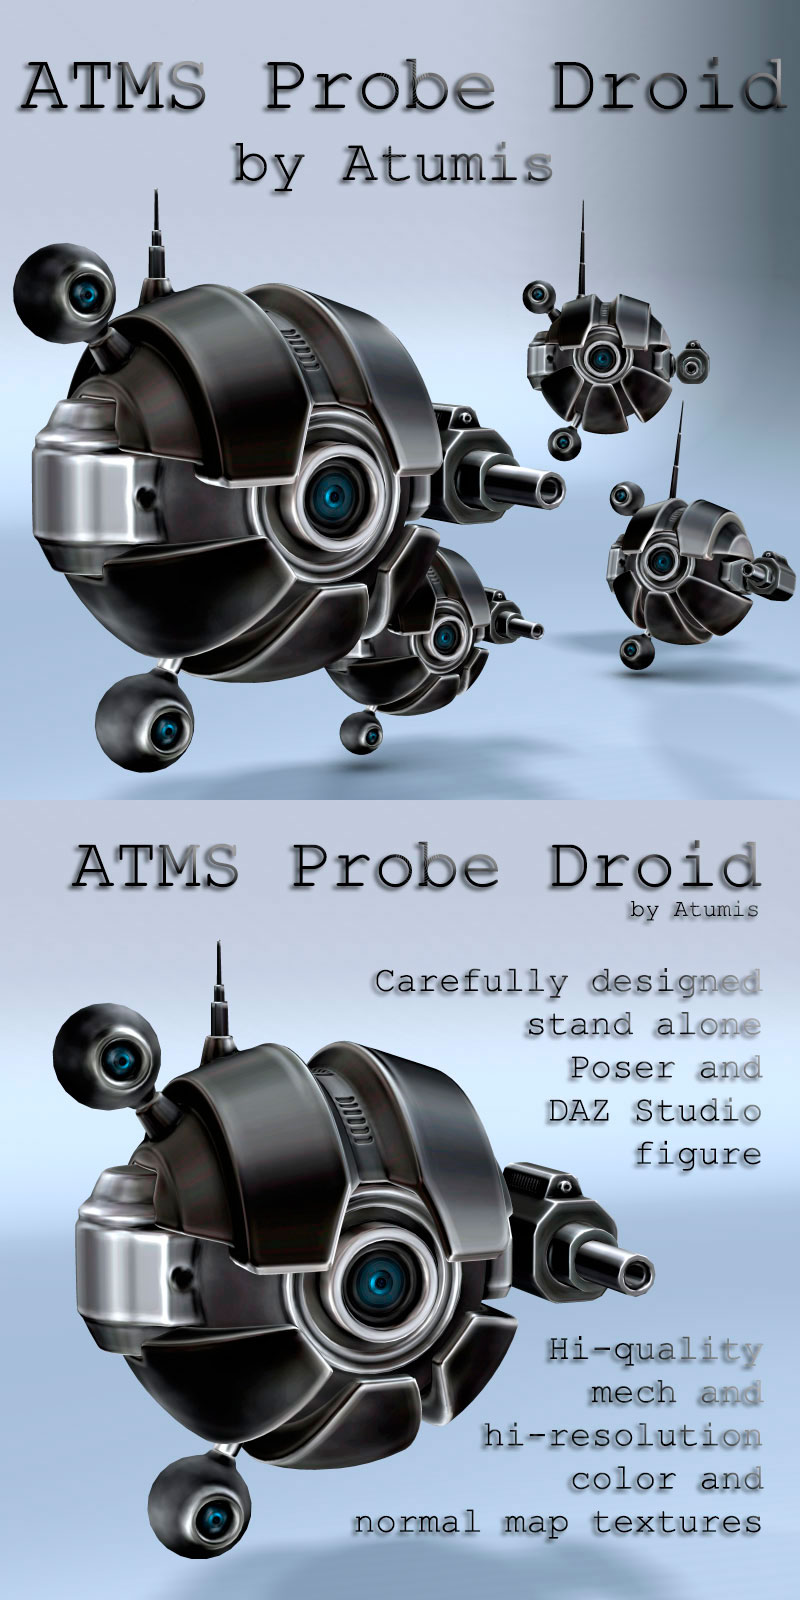 ATMS Probe Droid